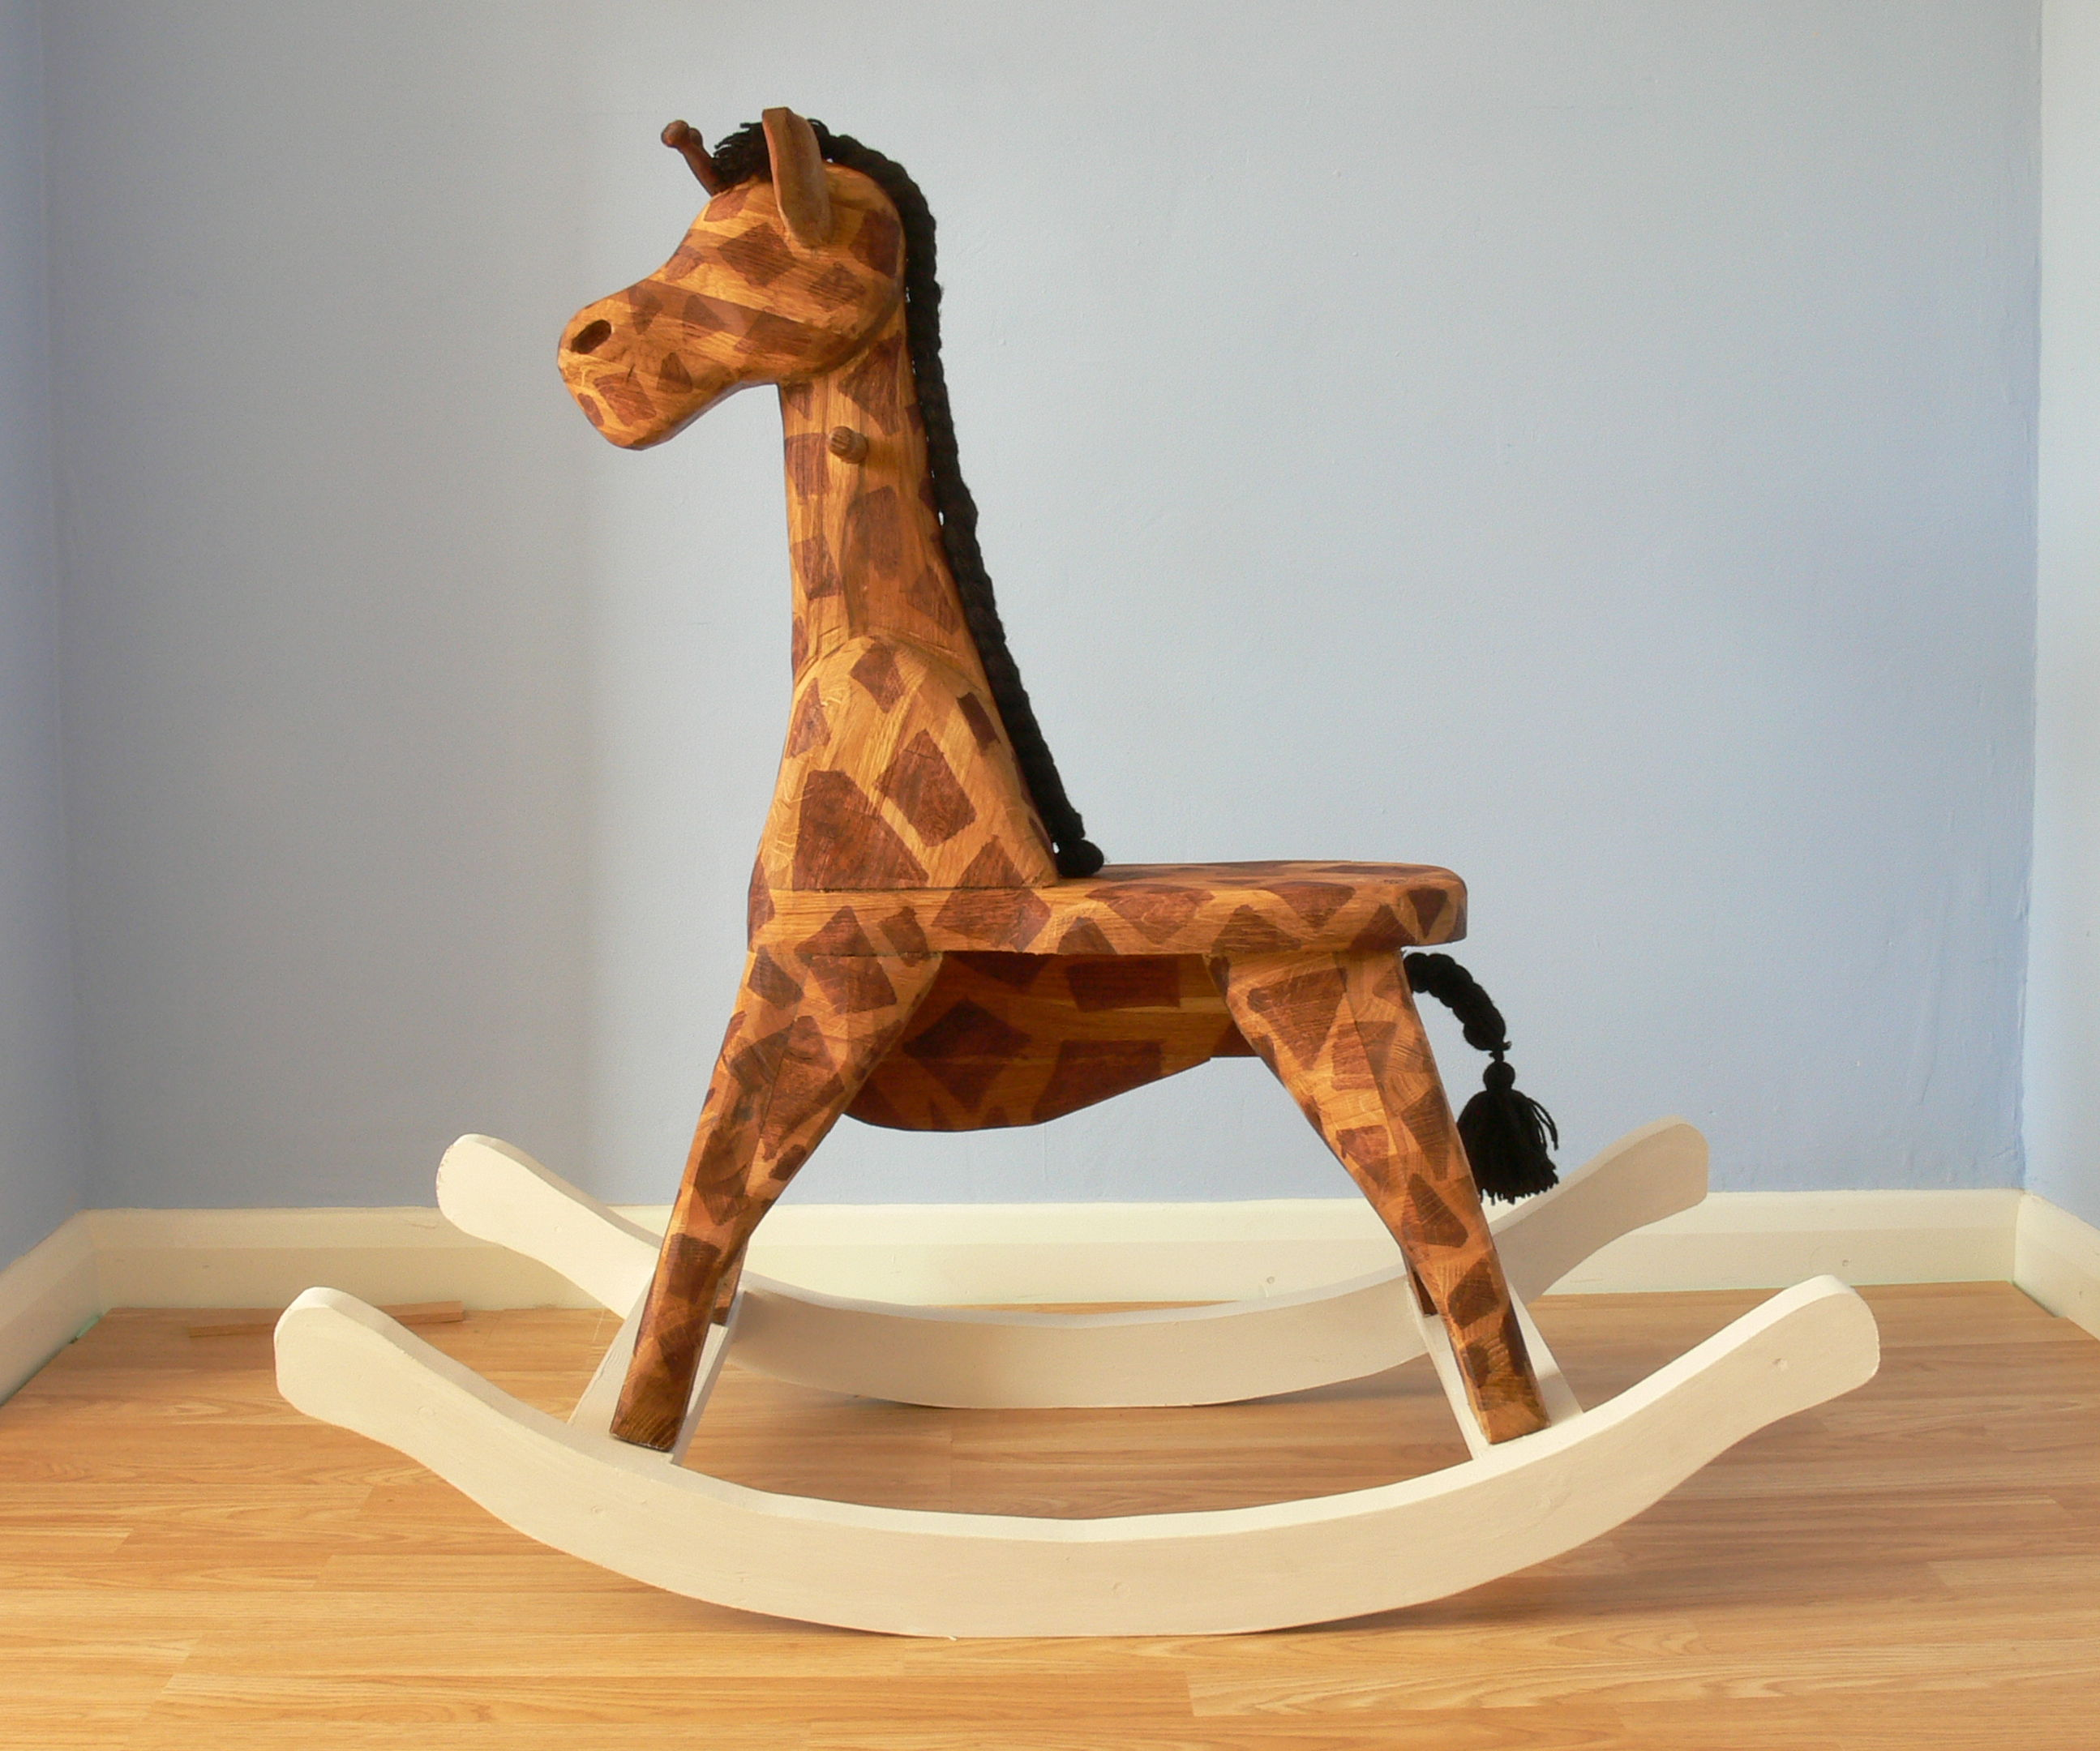 Wooden Rocking Horse Giraffe - Made Out of Kitchen Worktop